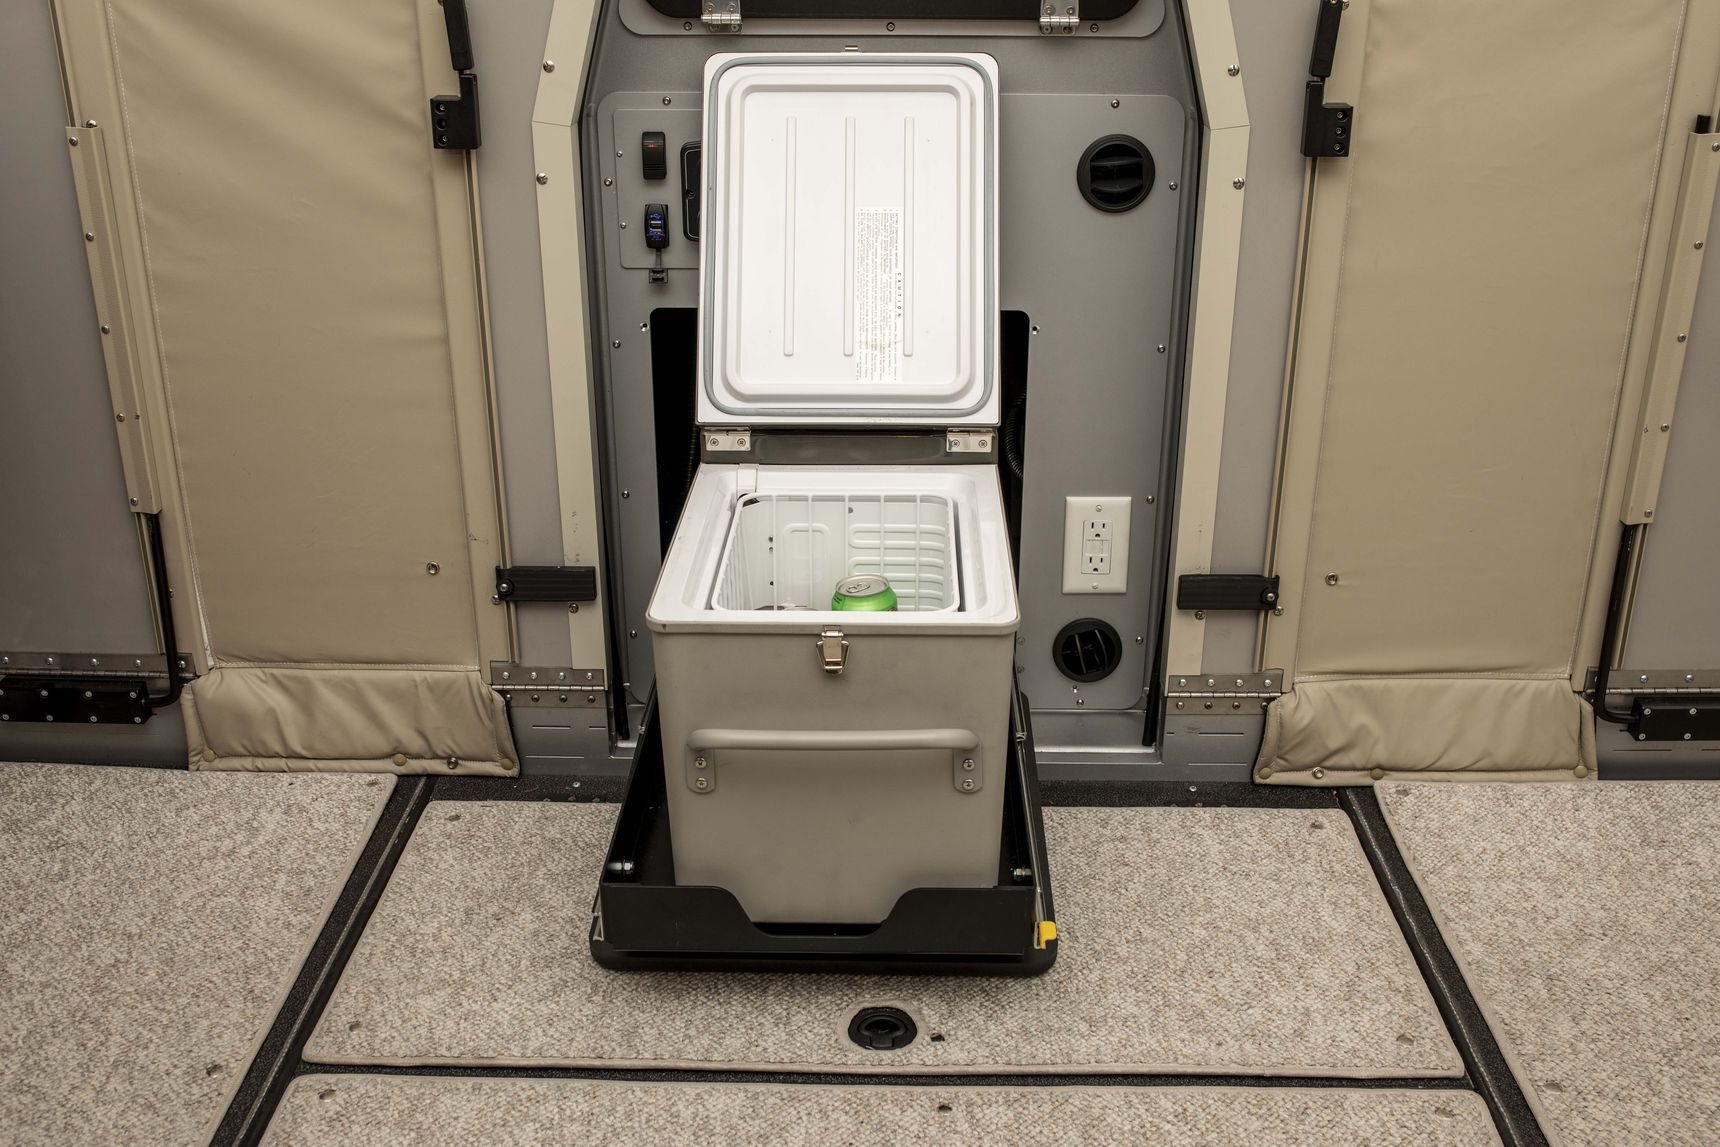 travel trailer - toilet